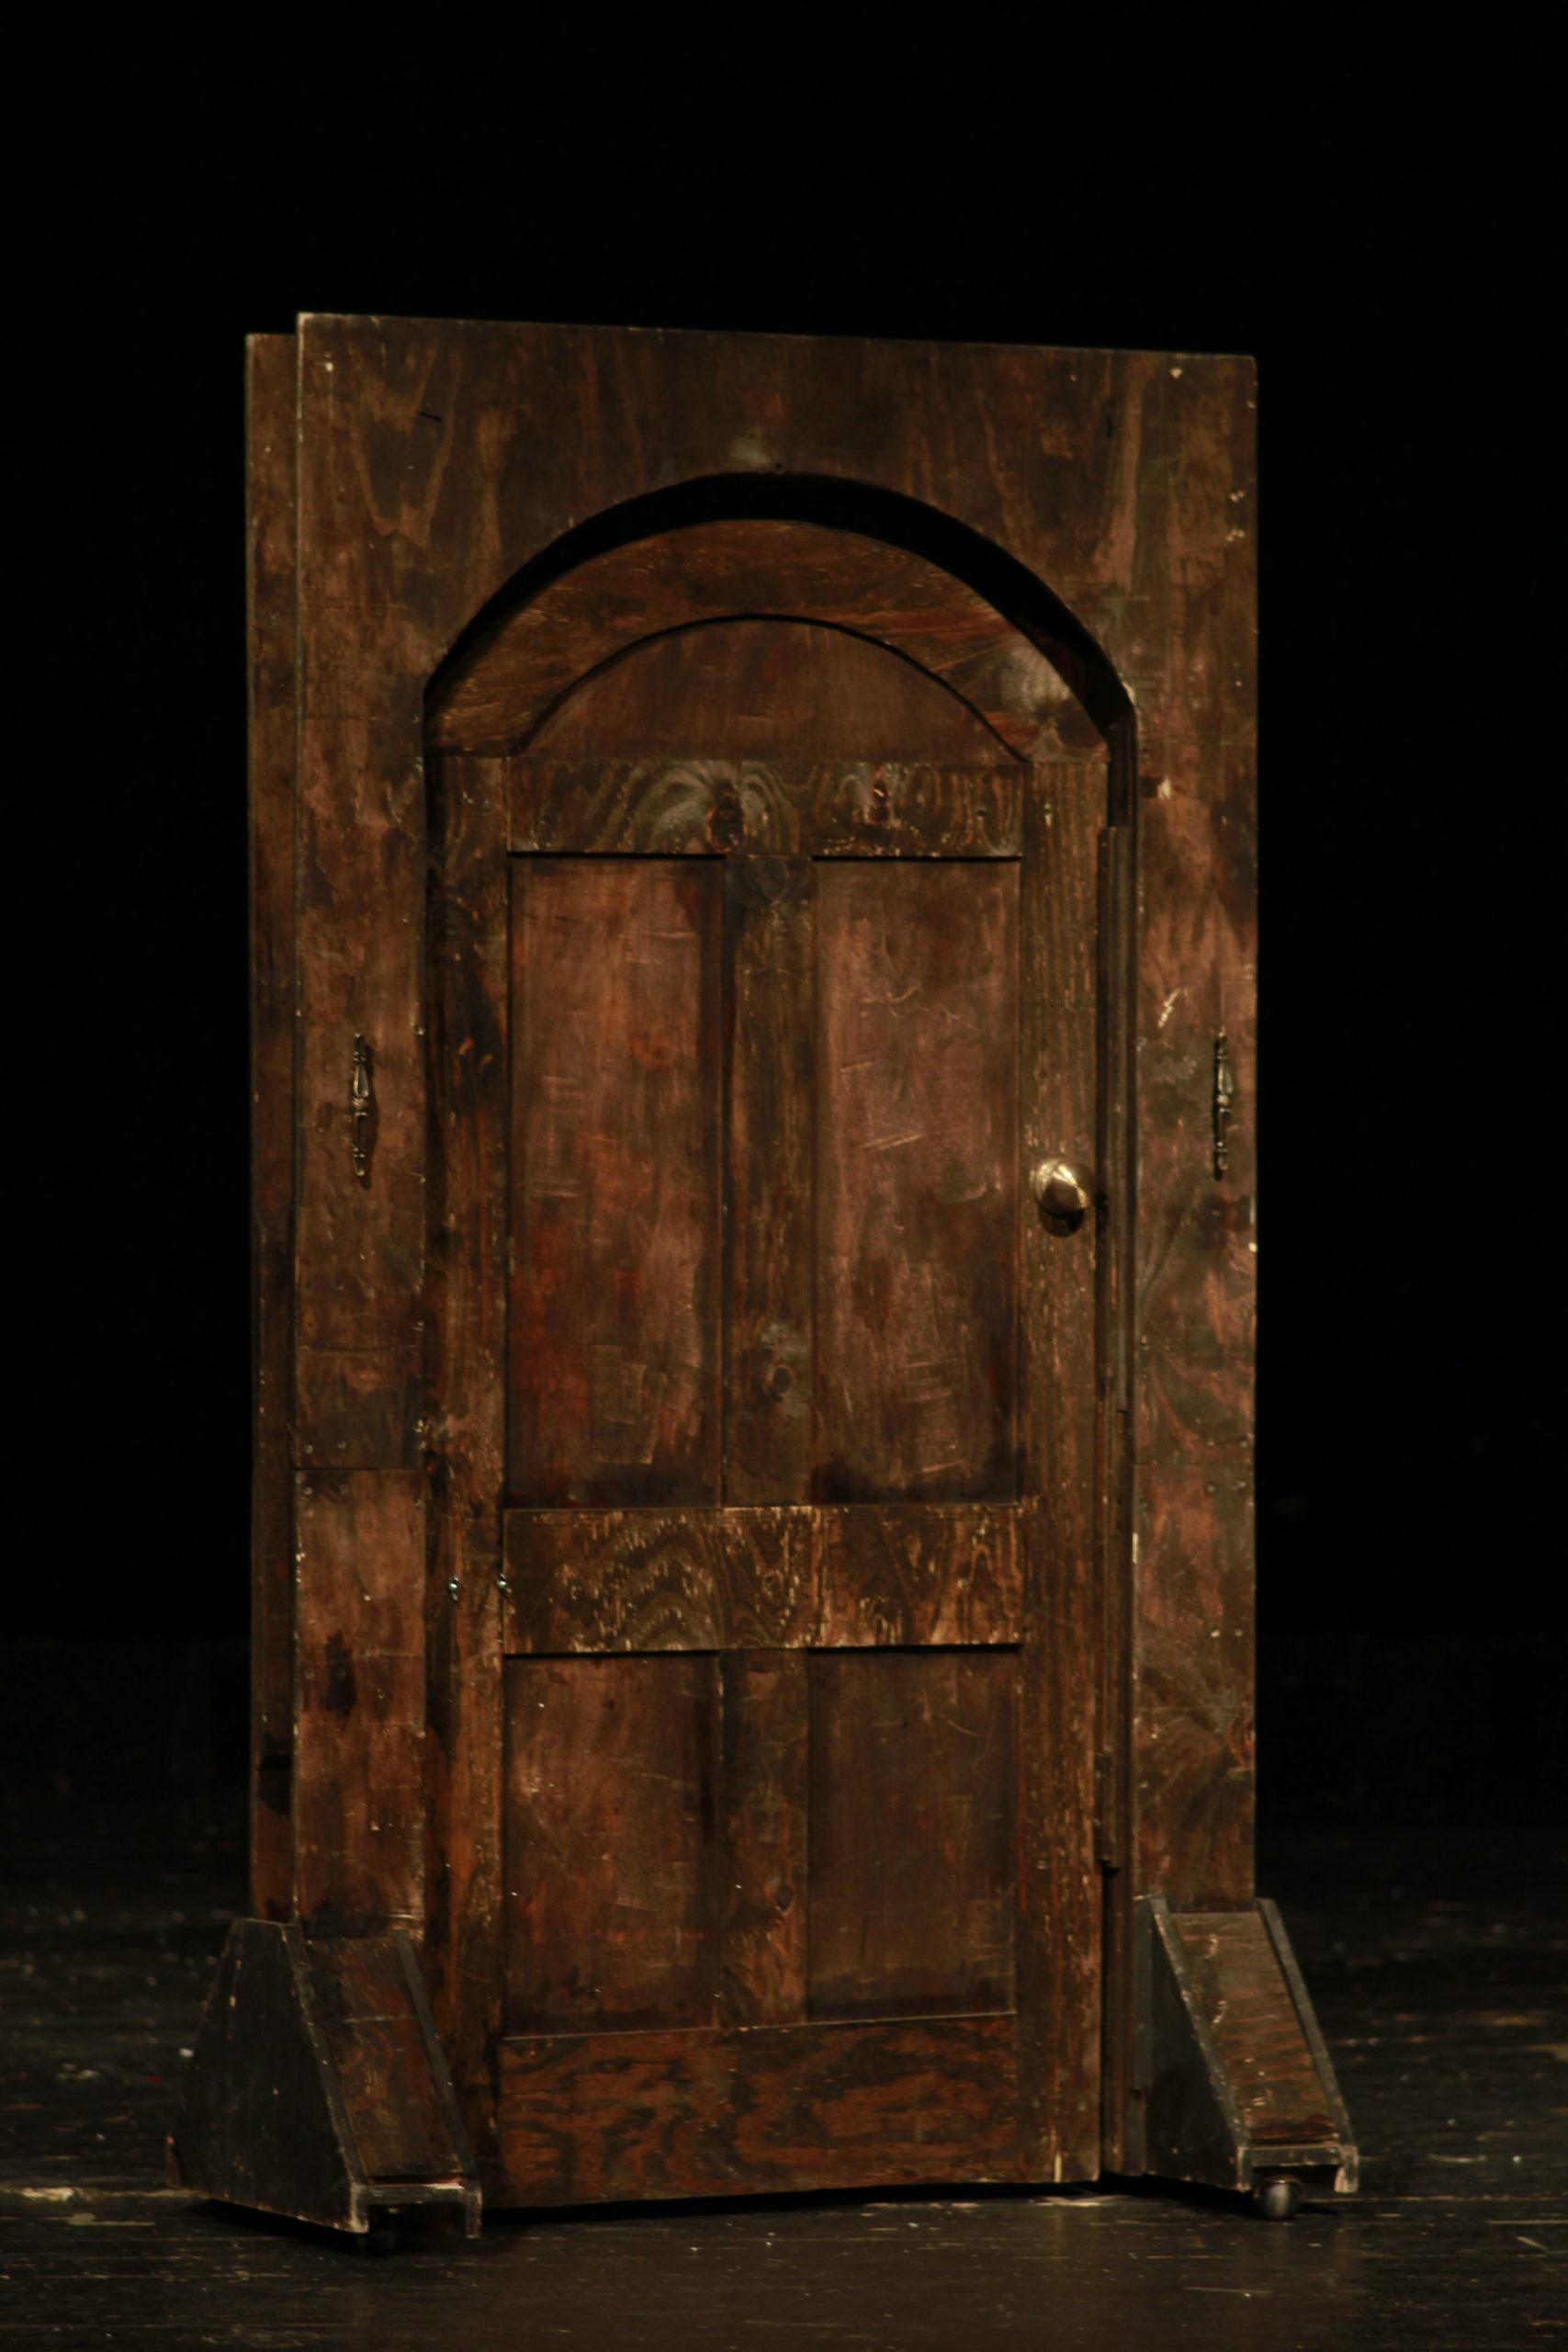 Door, Freestanding Old Wooden Curved